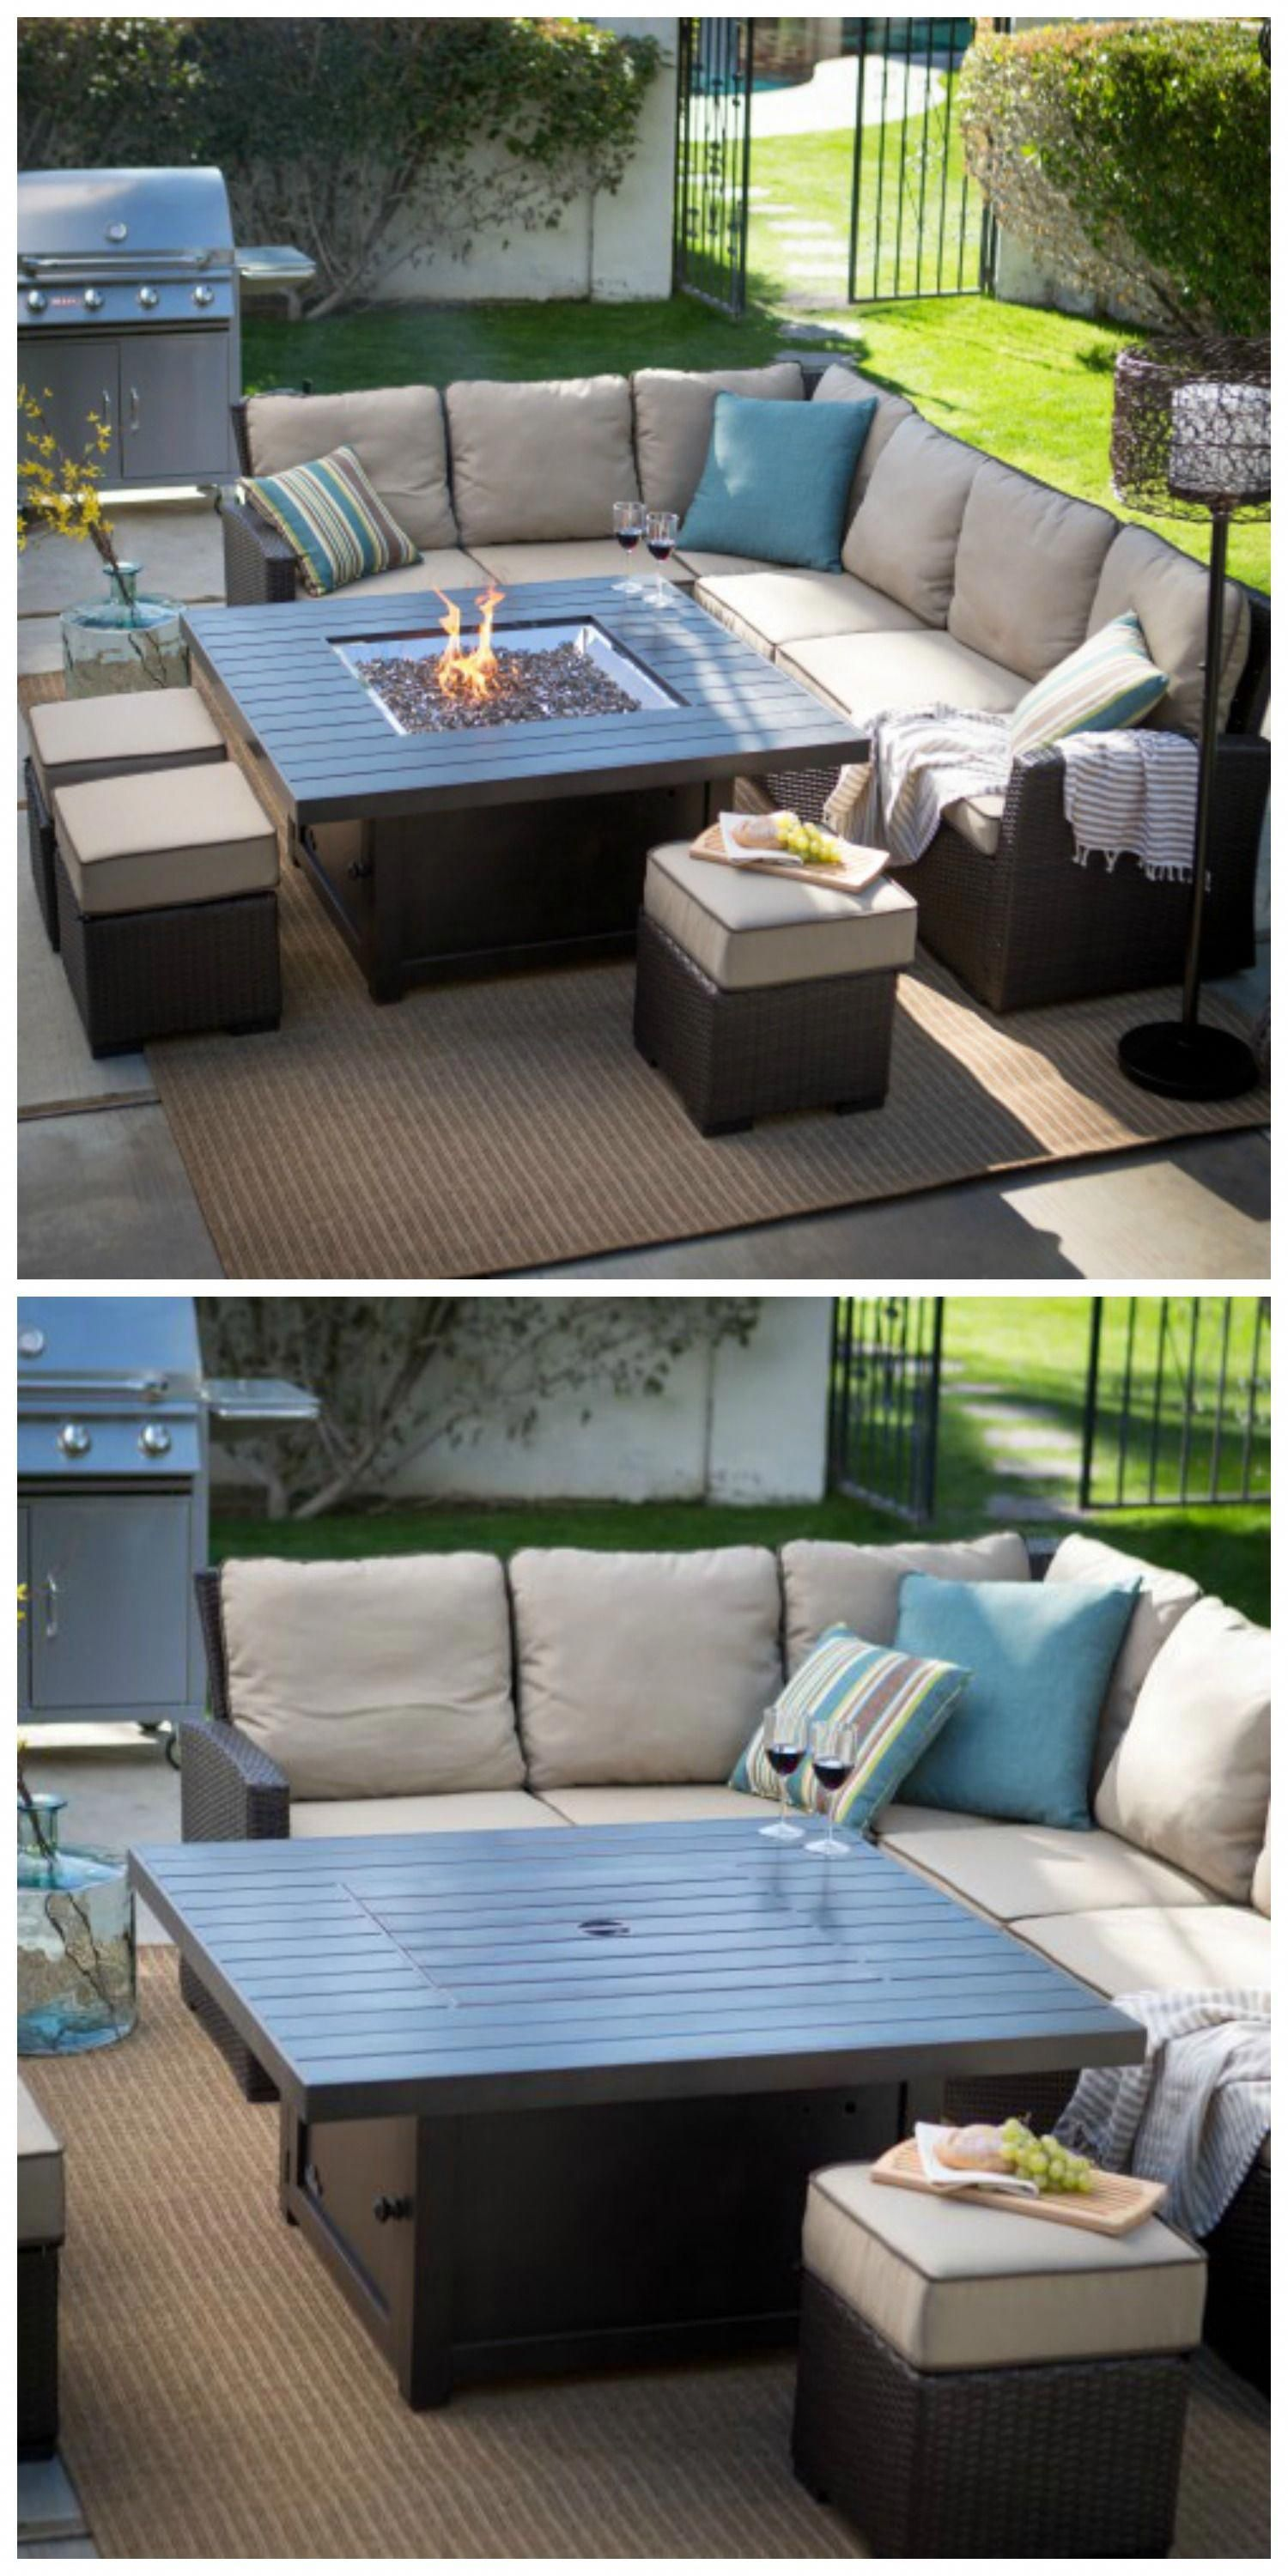 Could Go Well On The Loft Deck The Table Is Pretty Cool But Would Need To Figure Out With The Backyard Furniture Patio Furniture Fire Outdoor Patio Furniture